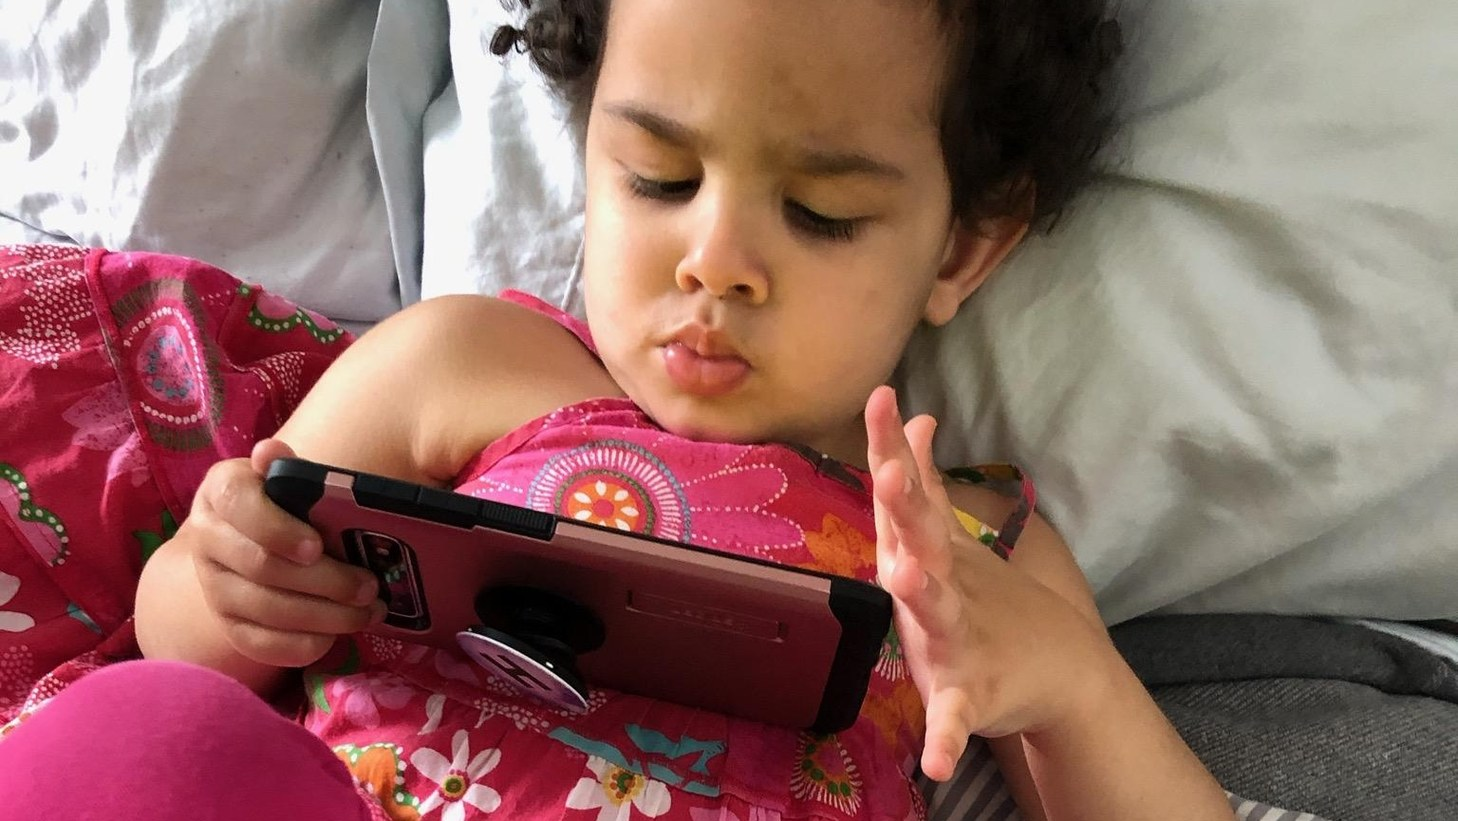 """Three-year-old Alice Aurelia Grant loves watching """"Frozen"""" and """"Frozen II."""" Prior to stay-at-home orders, she never was allowed screen time. Now, it's the de facto babysitter while her parents work from home."""